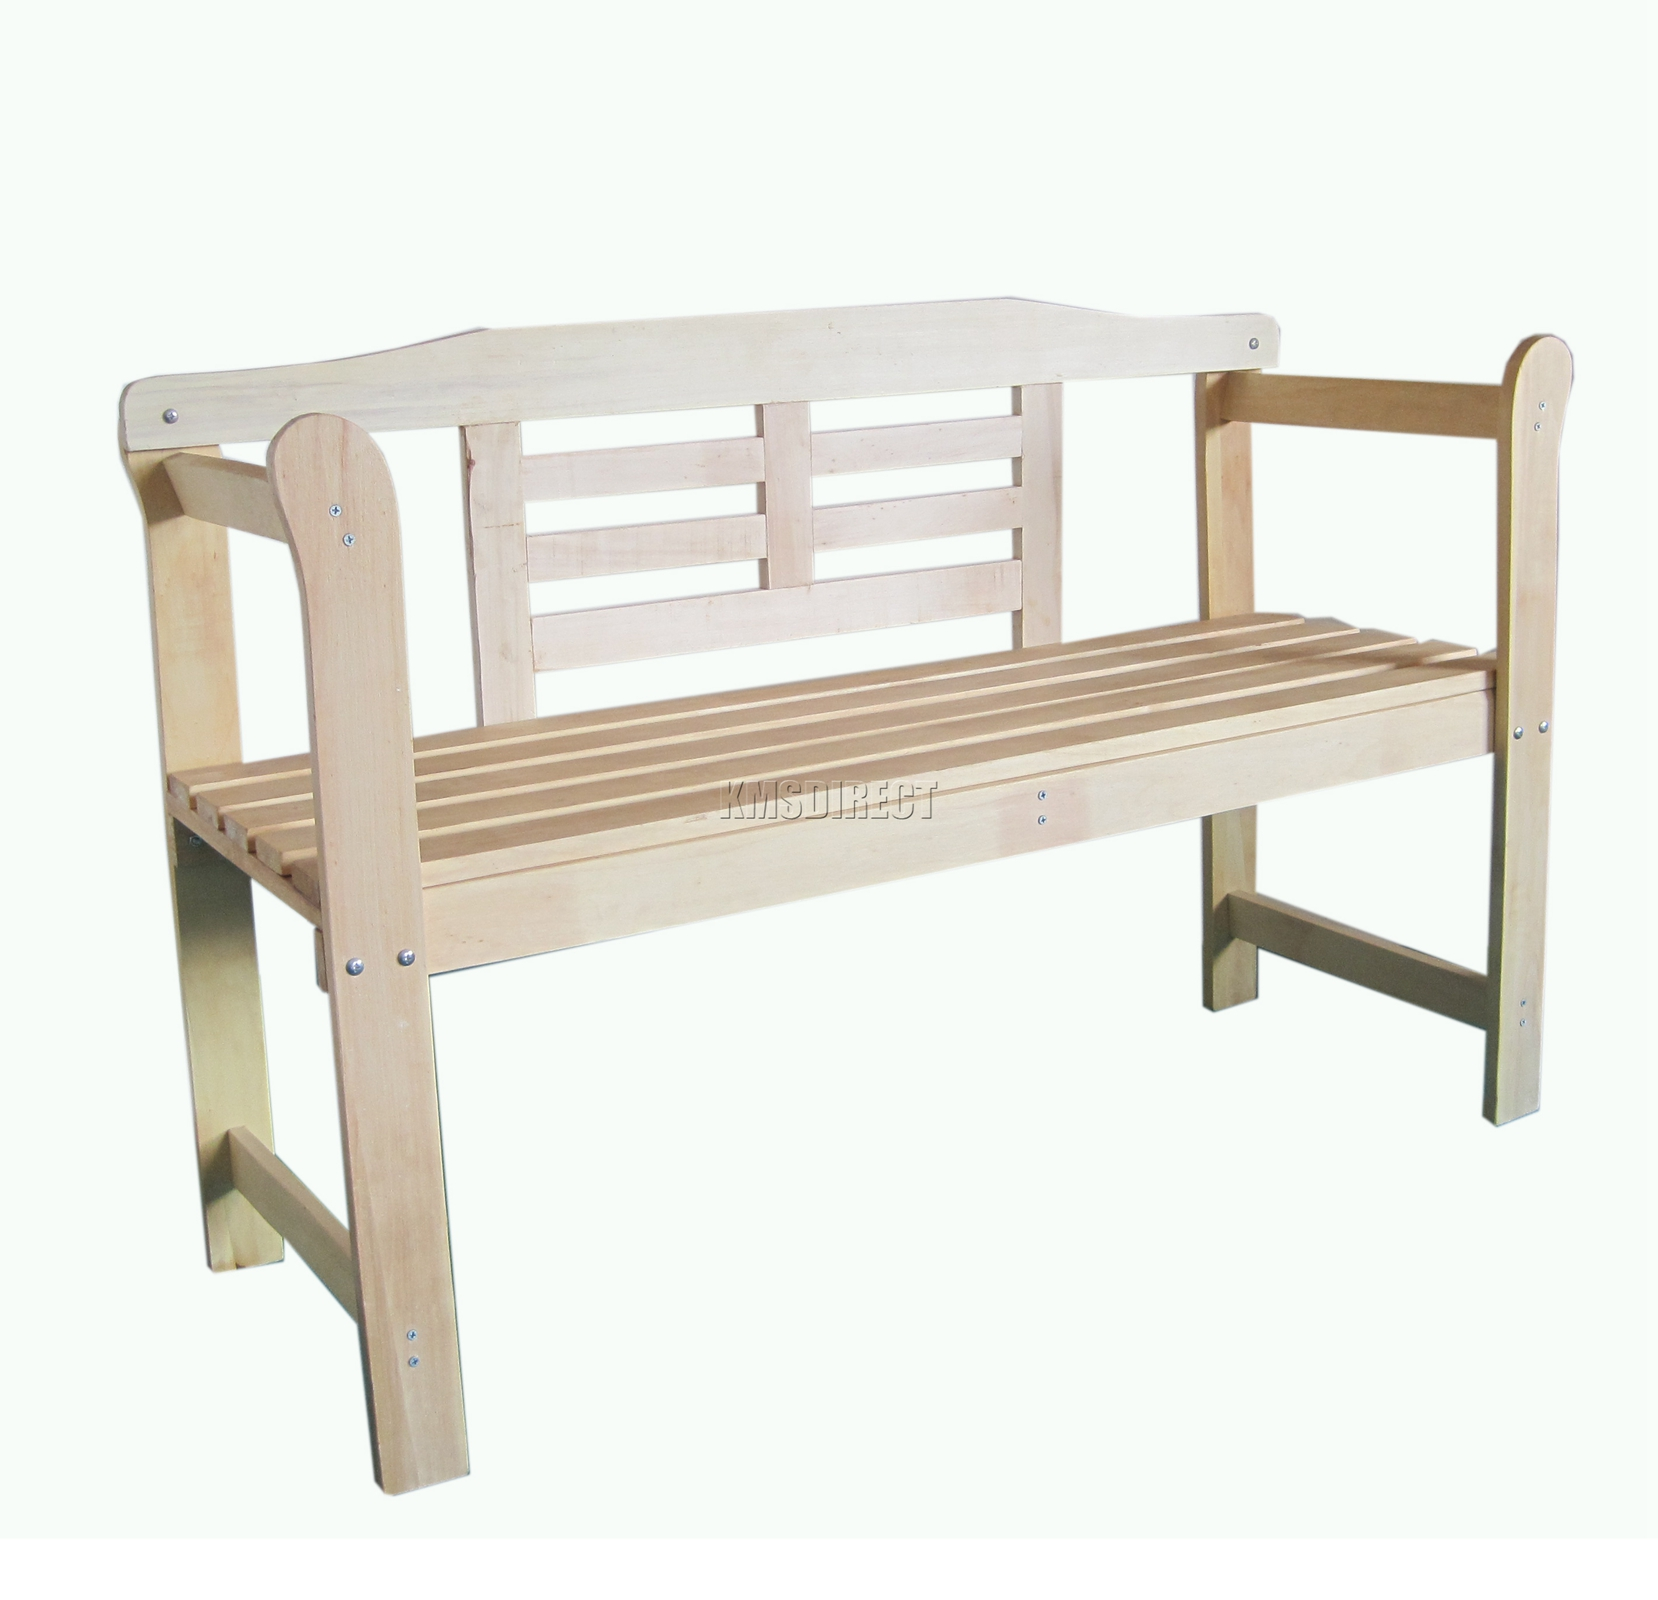 New Outdoor Home 2 Seat Seater Wooden Garden Bench Hardwood Furniture Patio Park Ebay